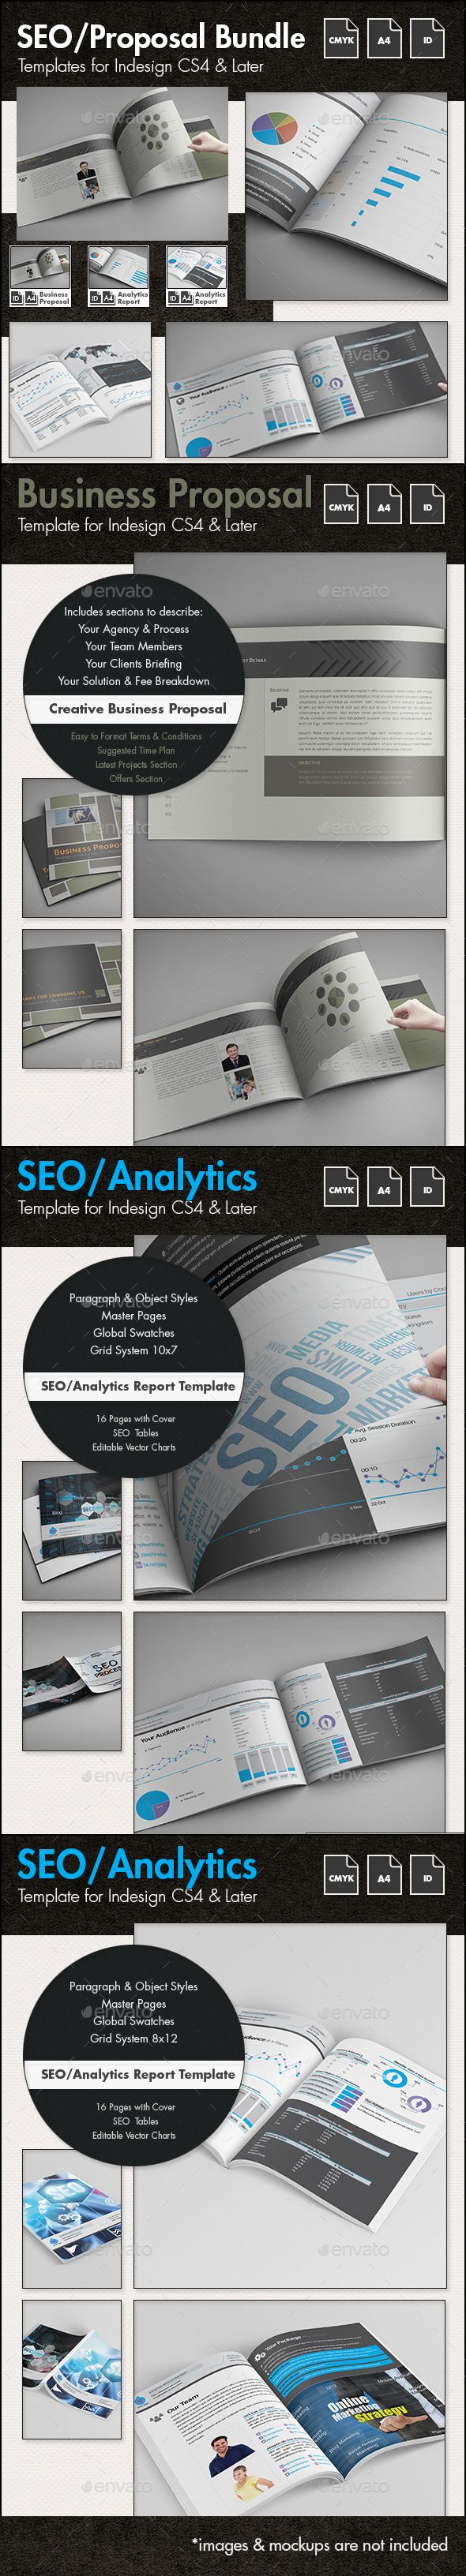 SEO Business Proposal Templates Bundle 49